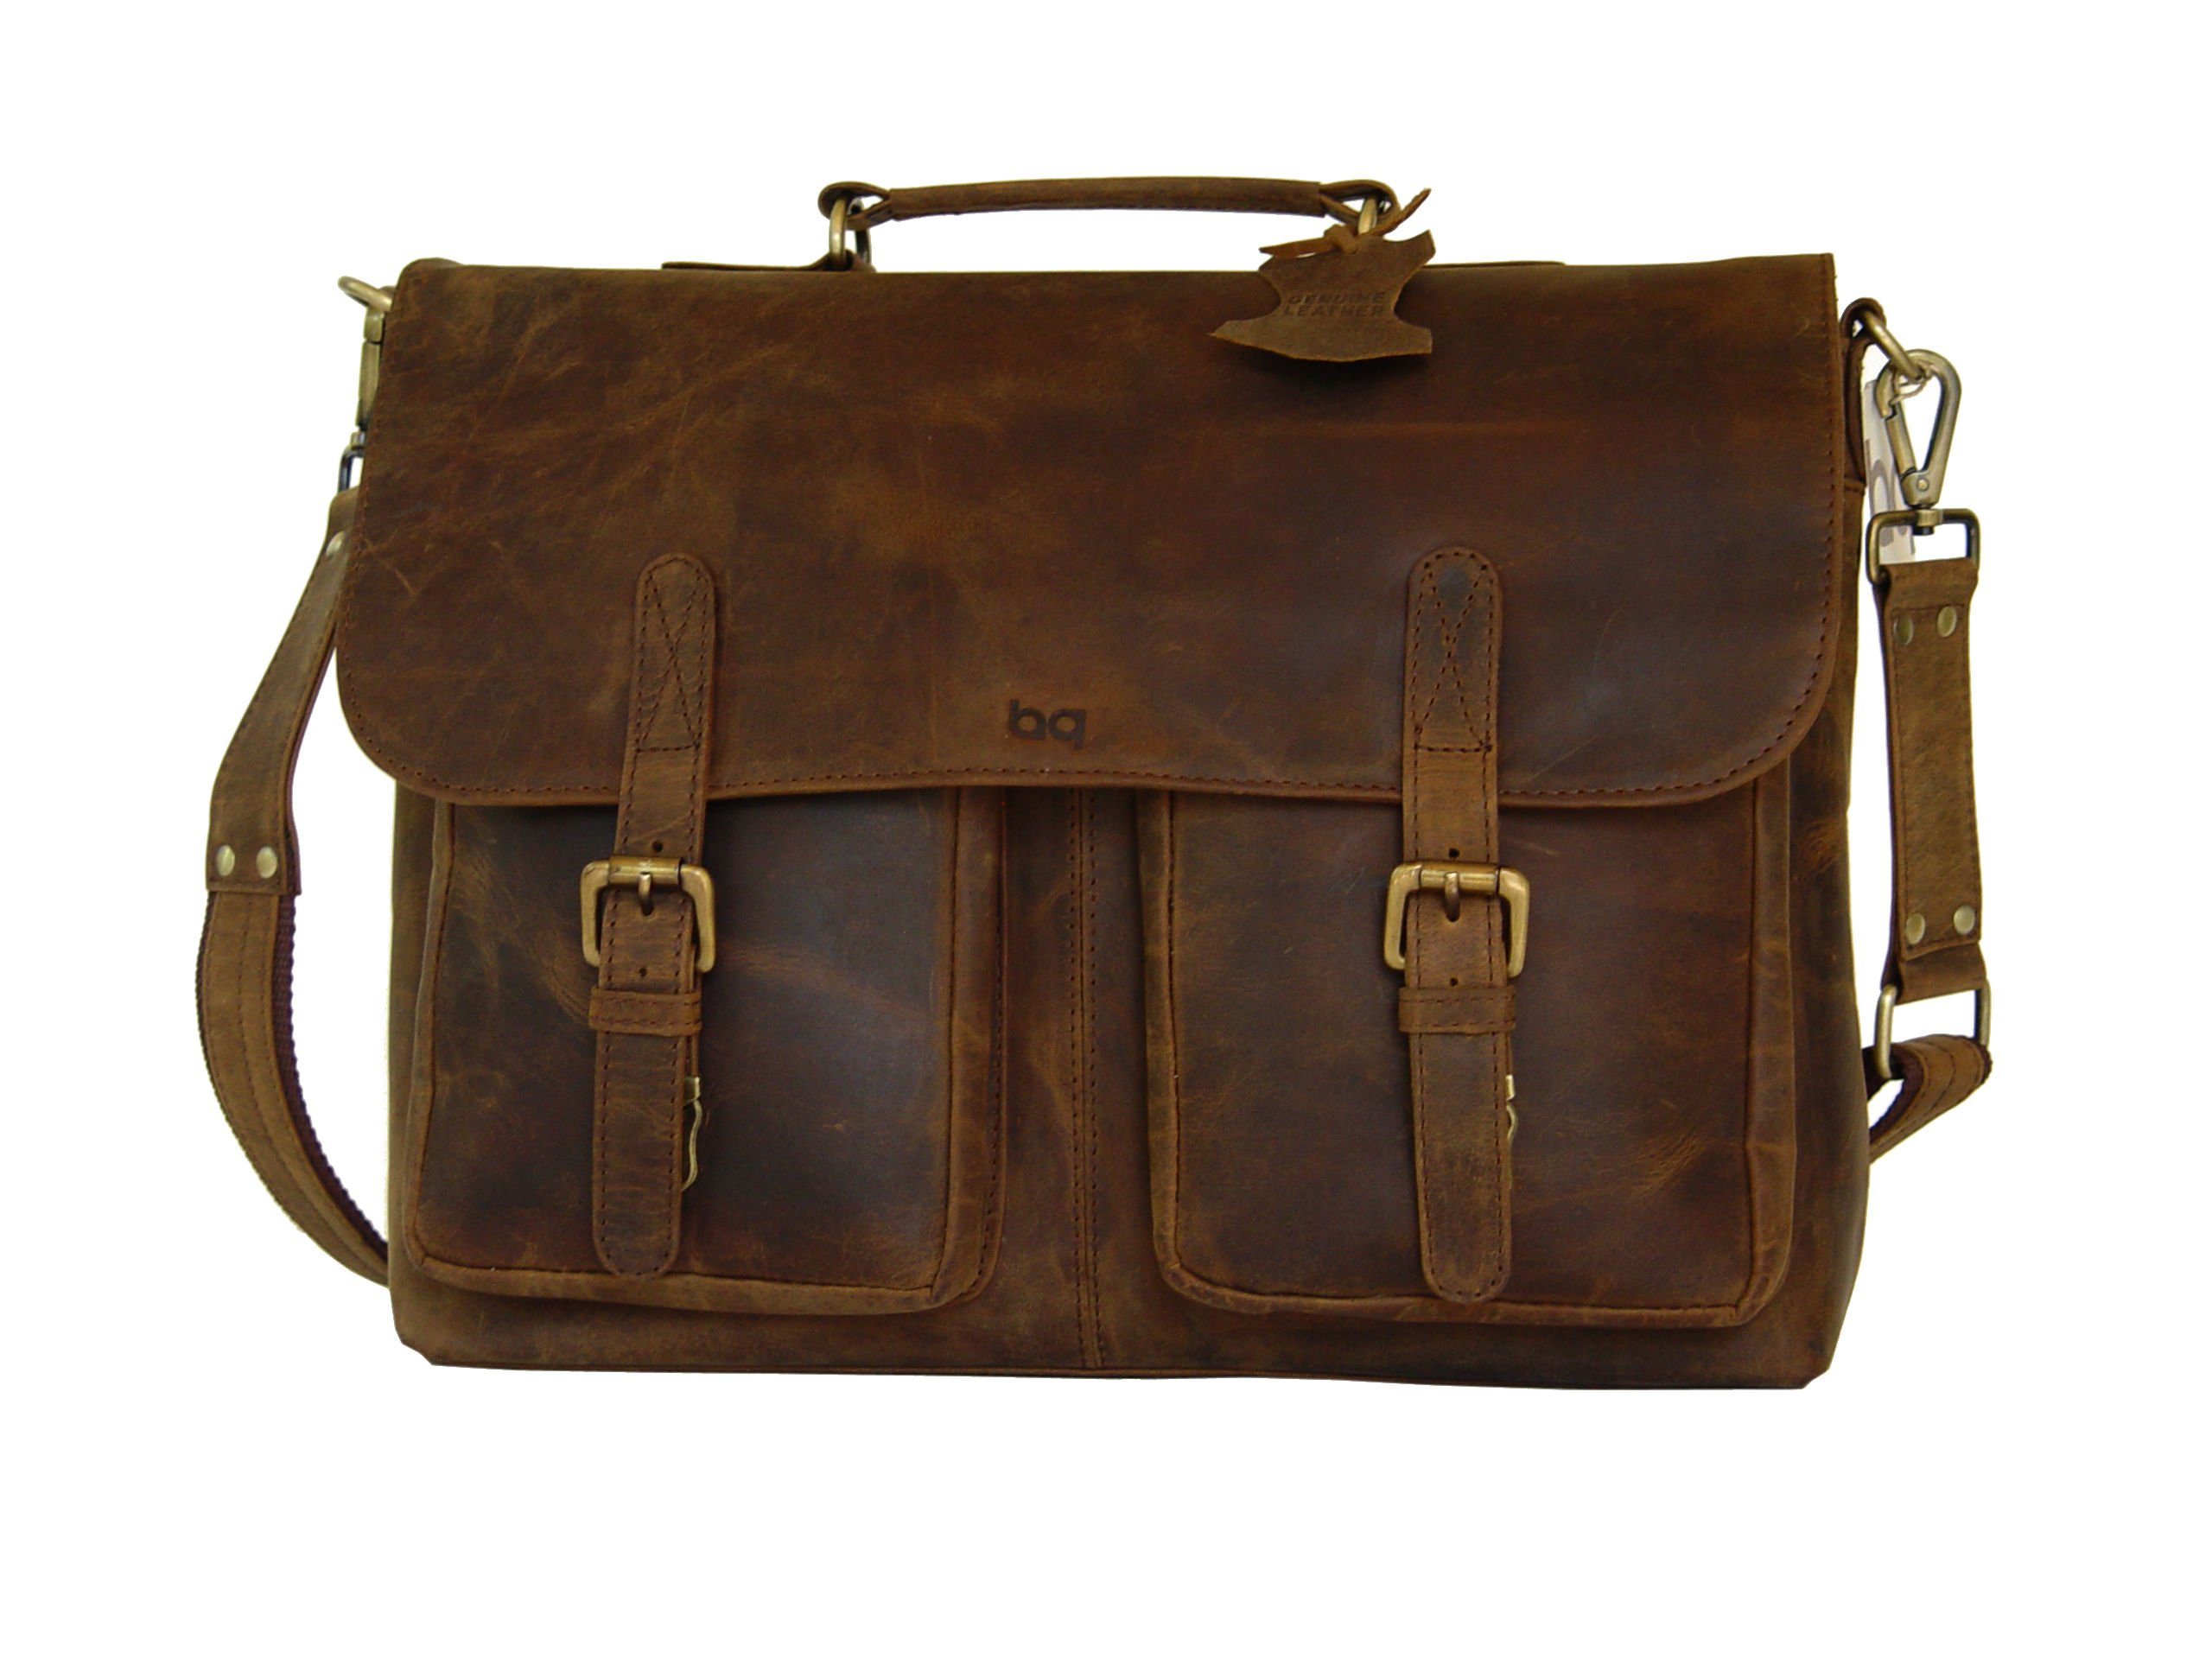 Top Quality Full Grain Leather Briefcase, Shoulder Bag, Messenger Bag, Laptop Satchel by BASIC GEAR